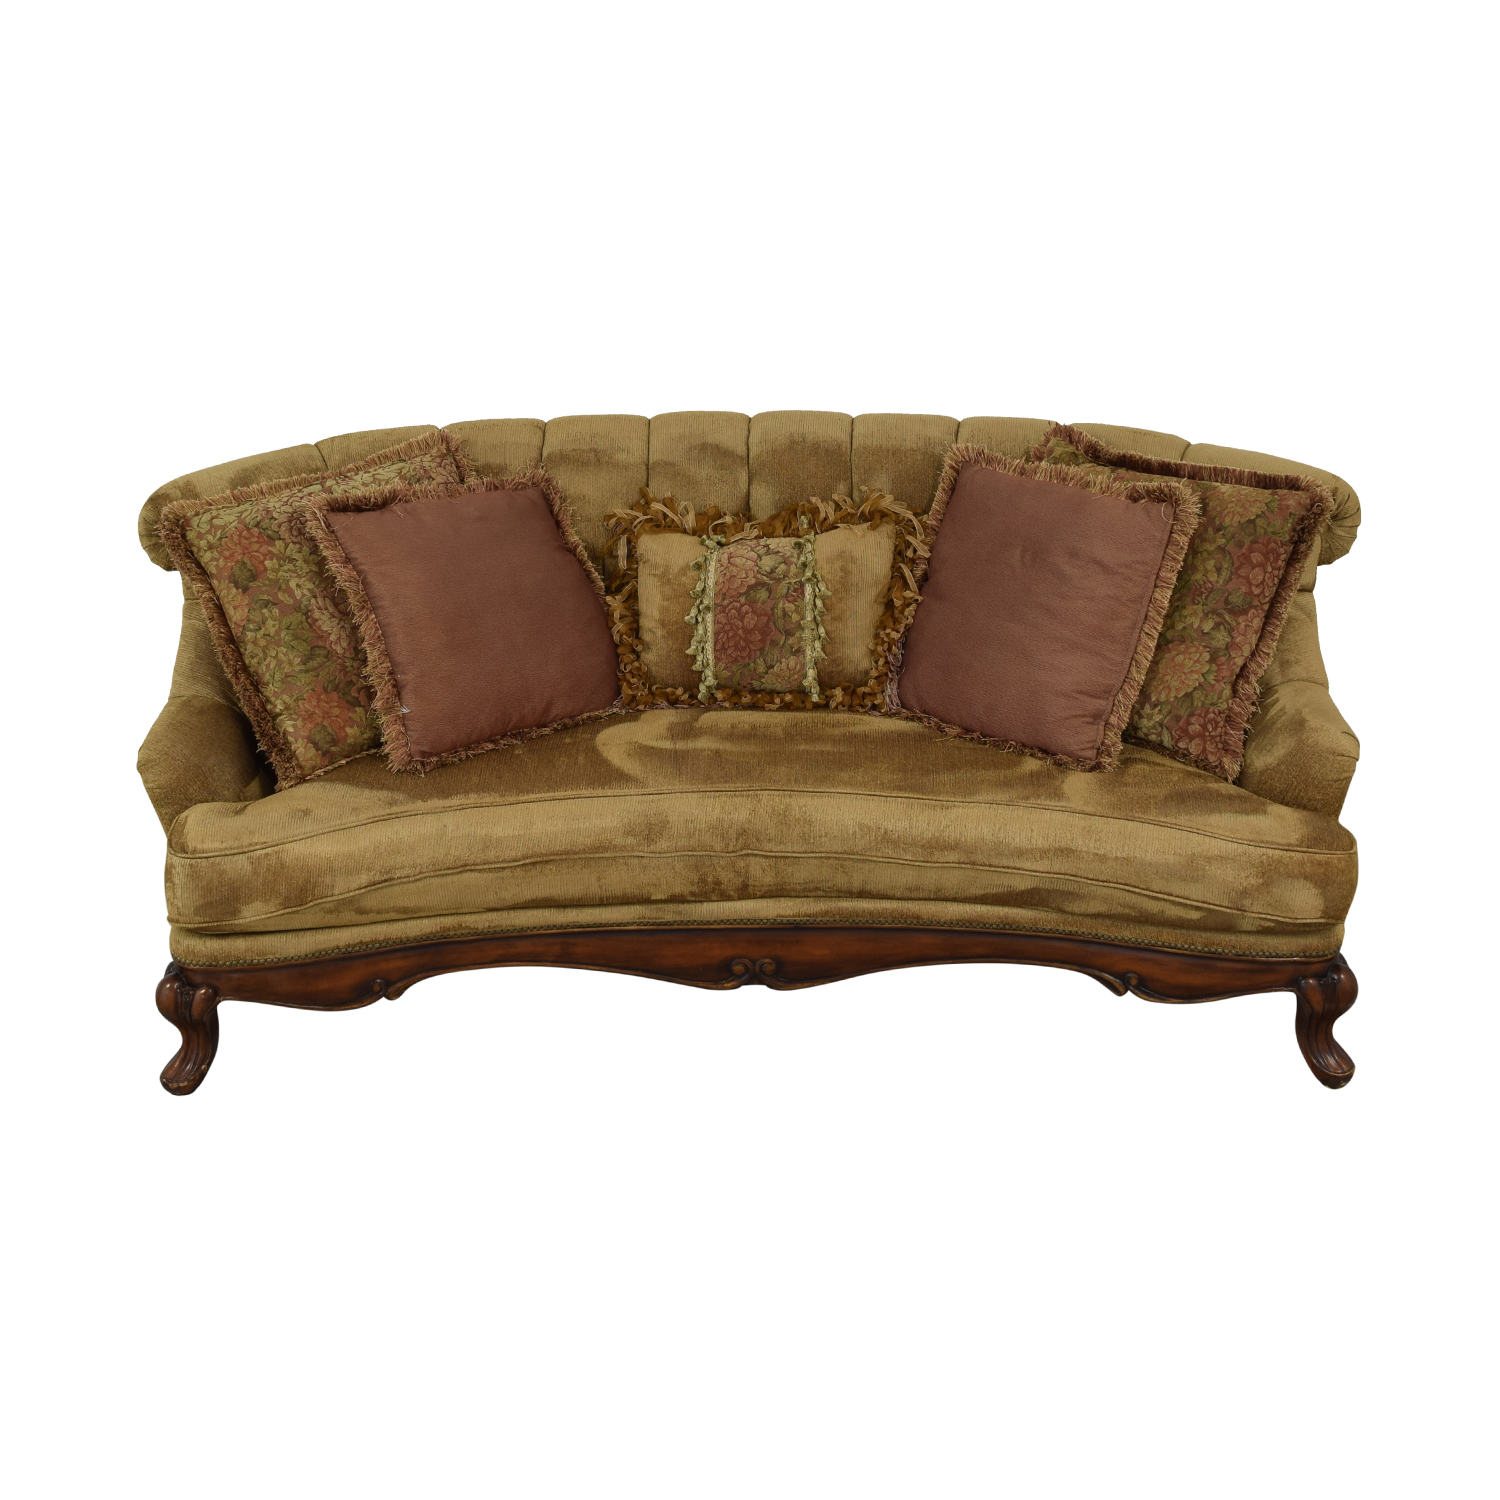 shop Schnadig Composition Collection Sitting Room Sofa Schnadig Classic Sofas